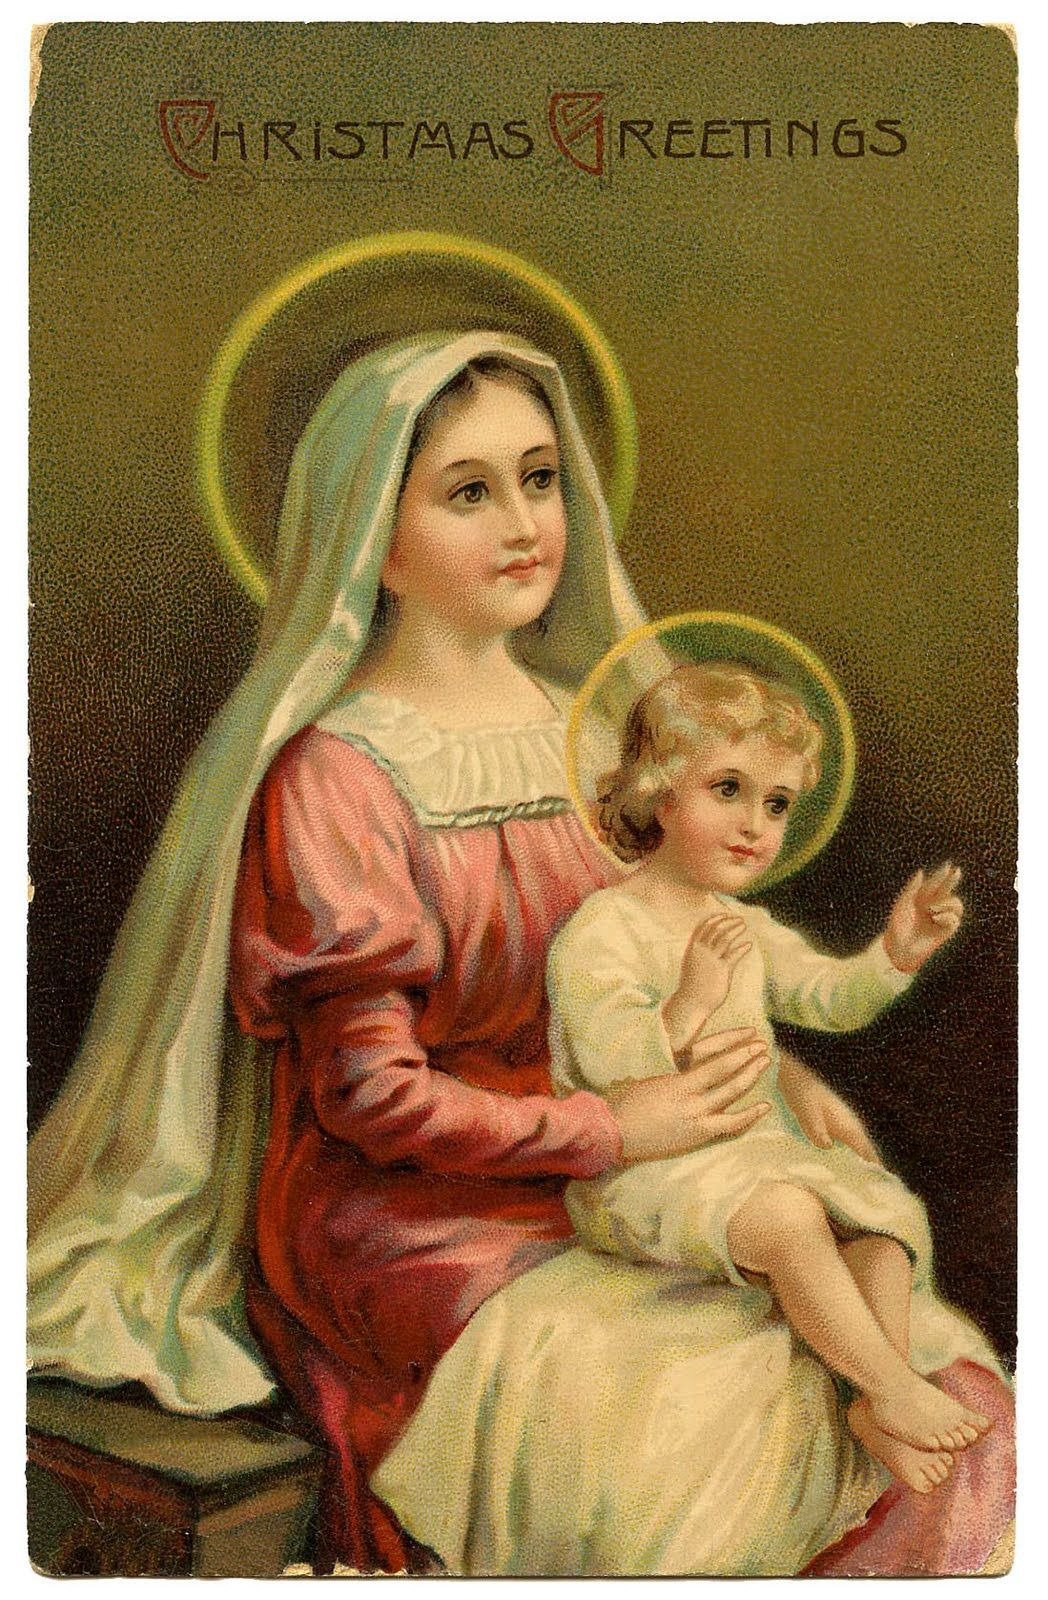 Vintage Christmas Graphic Image - Madonna & Child - The Graphics Fairy